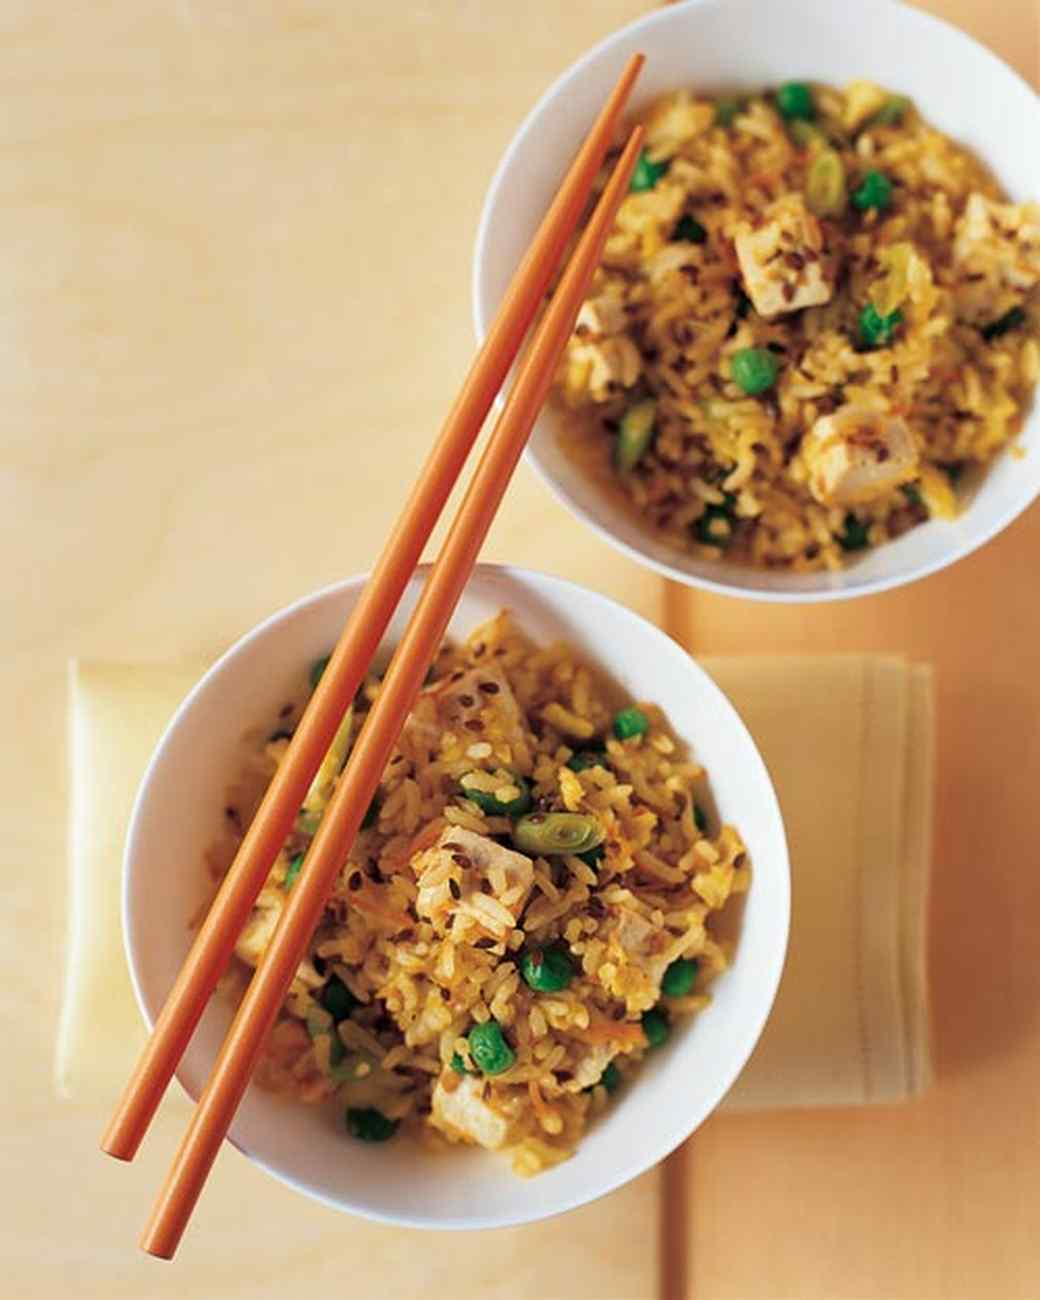 ml0404ftea5_0404_fried_rice_tofu_flaxseed.jpg